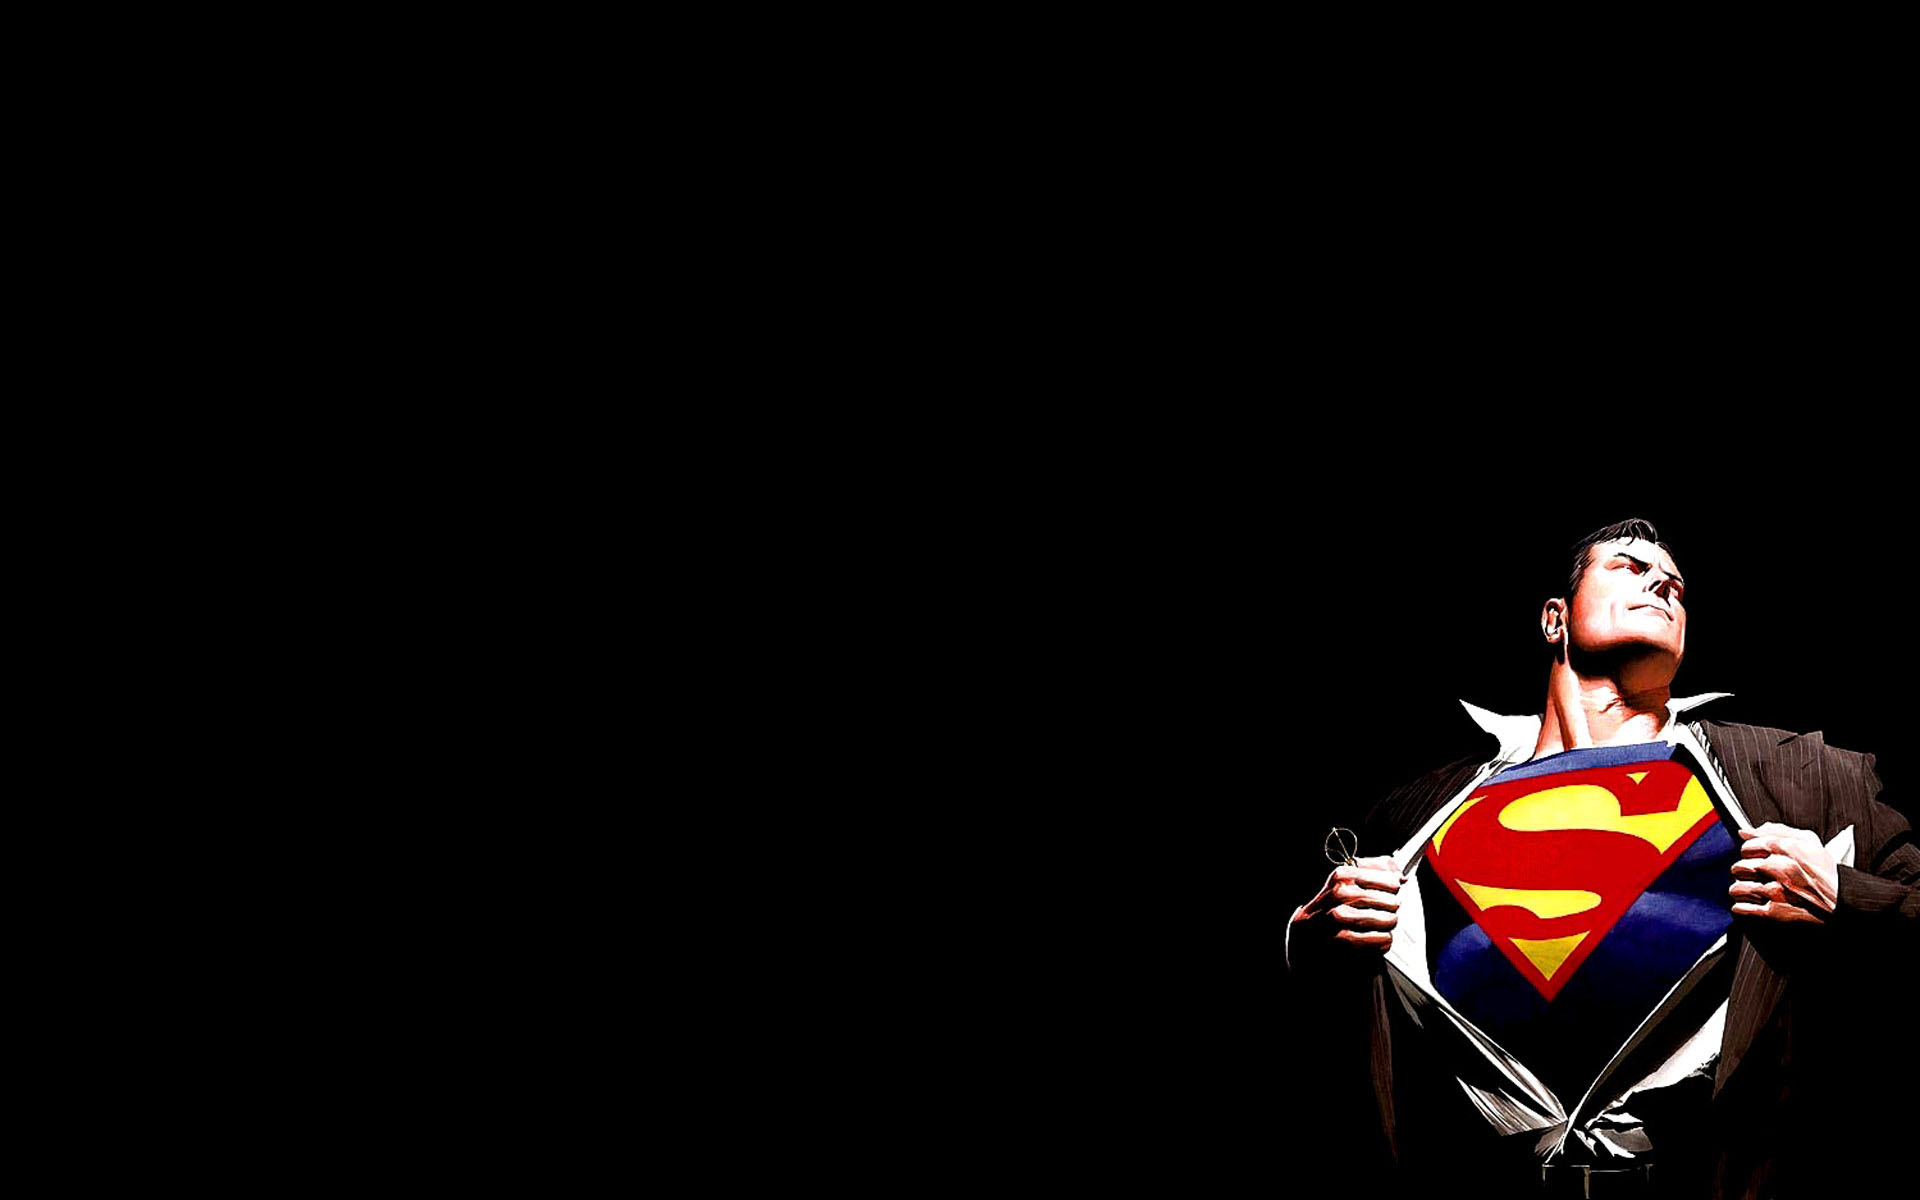 Description Superman Wallpaper HD is a hi res Wallpaper for pc 1920x1200